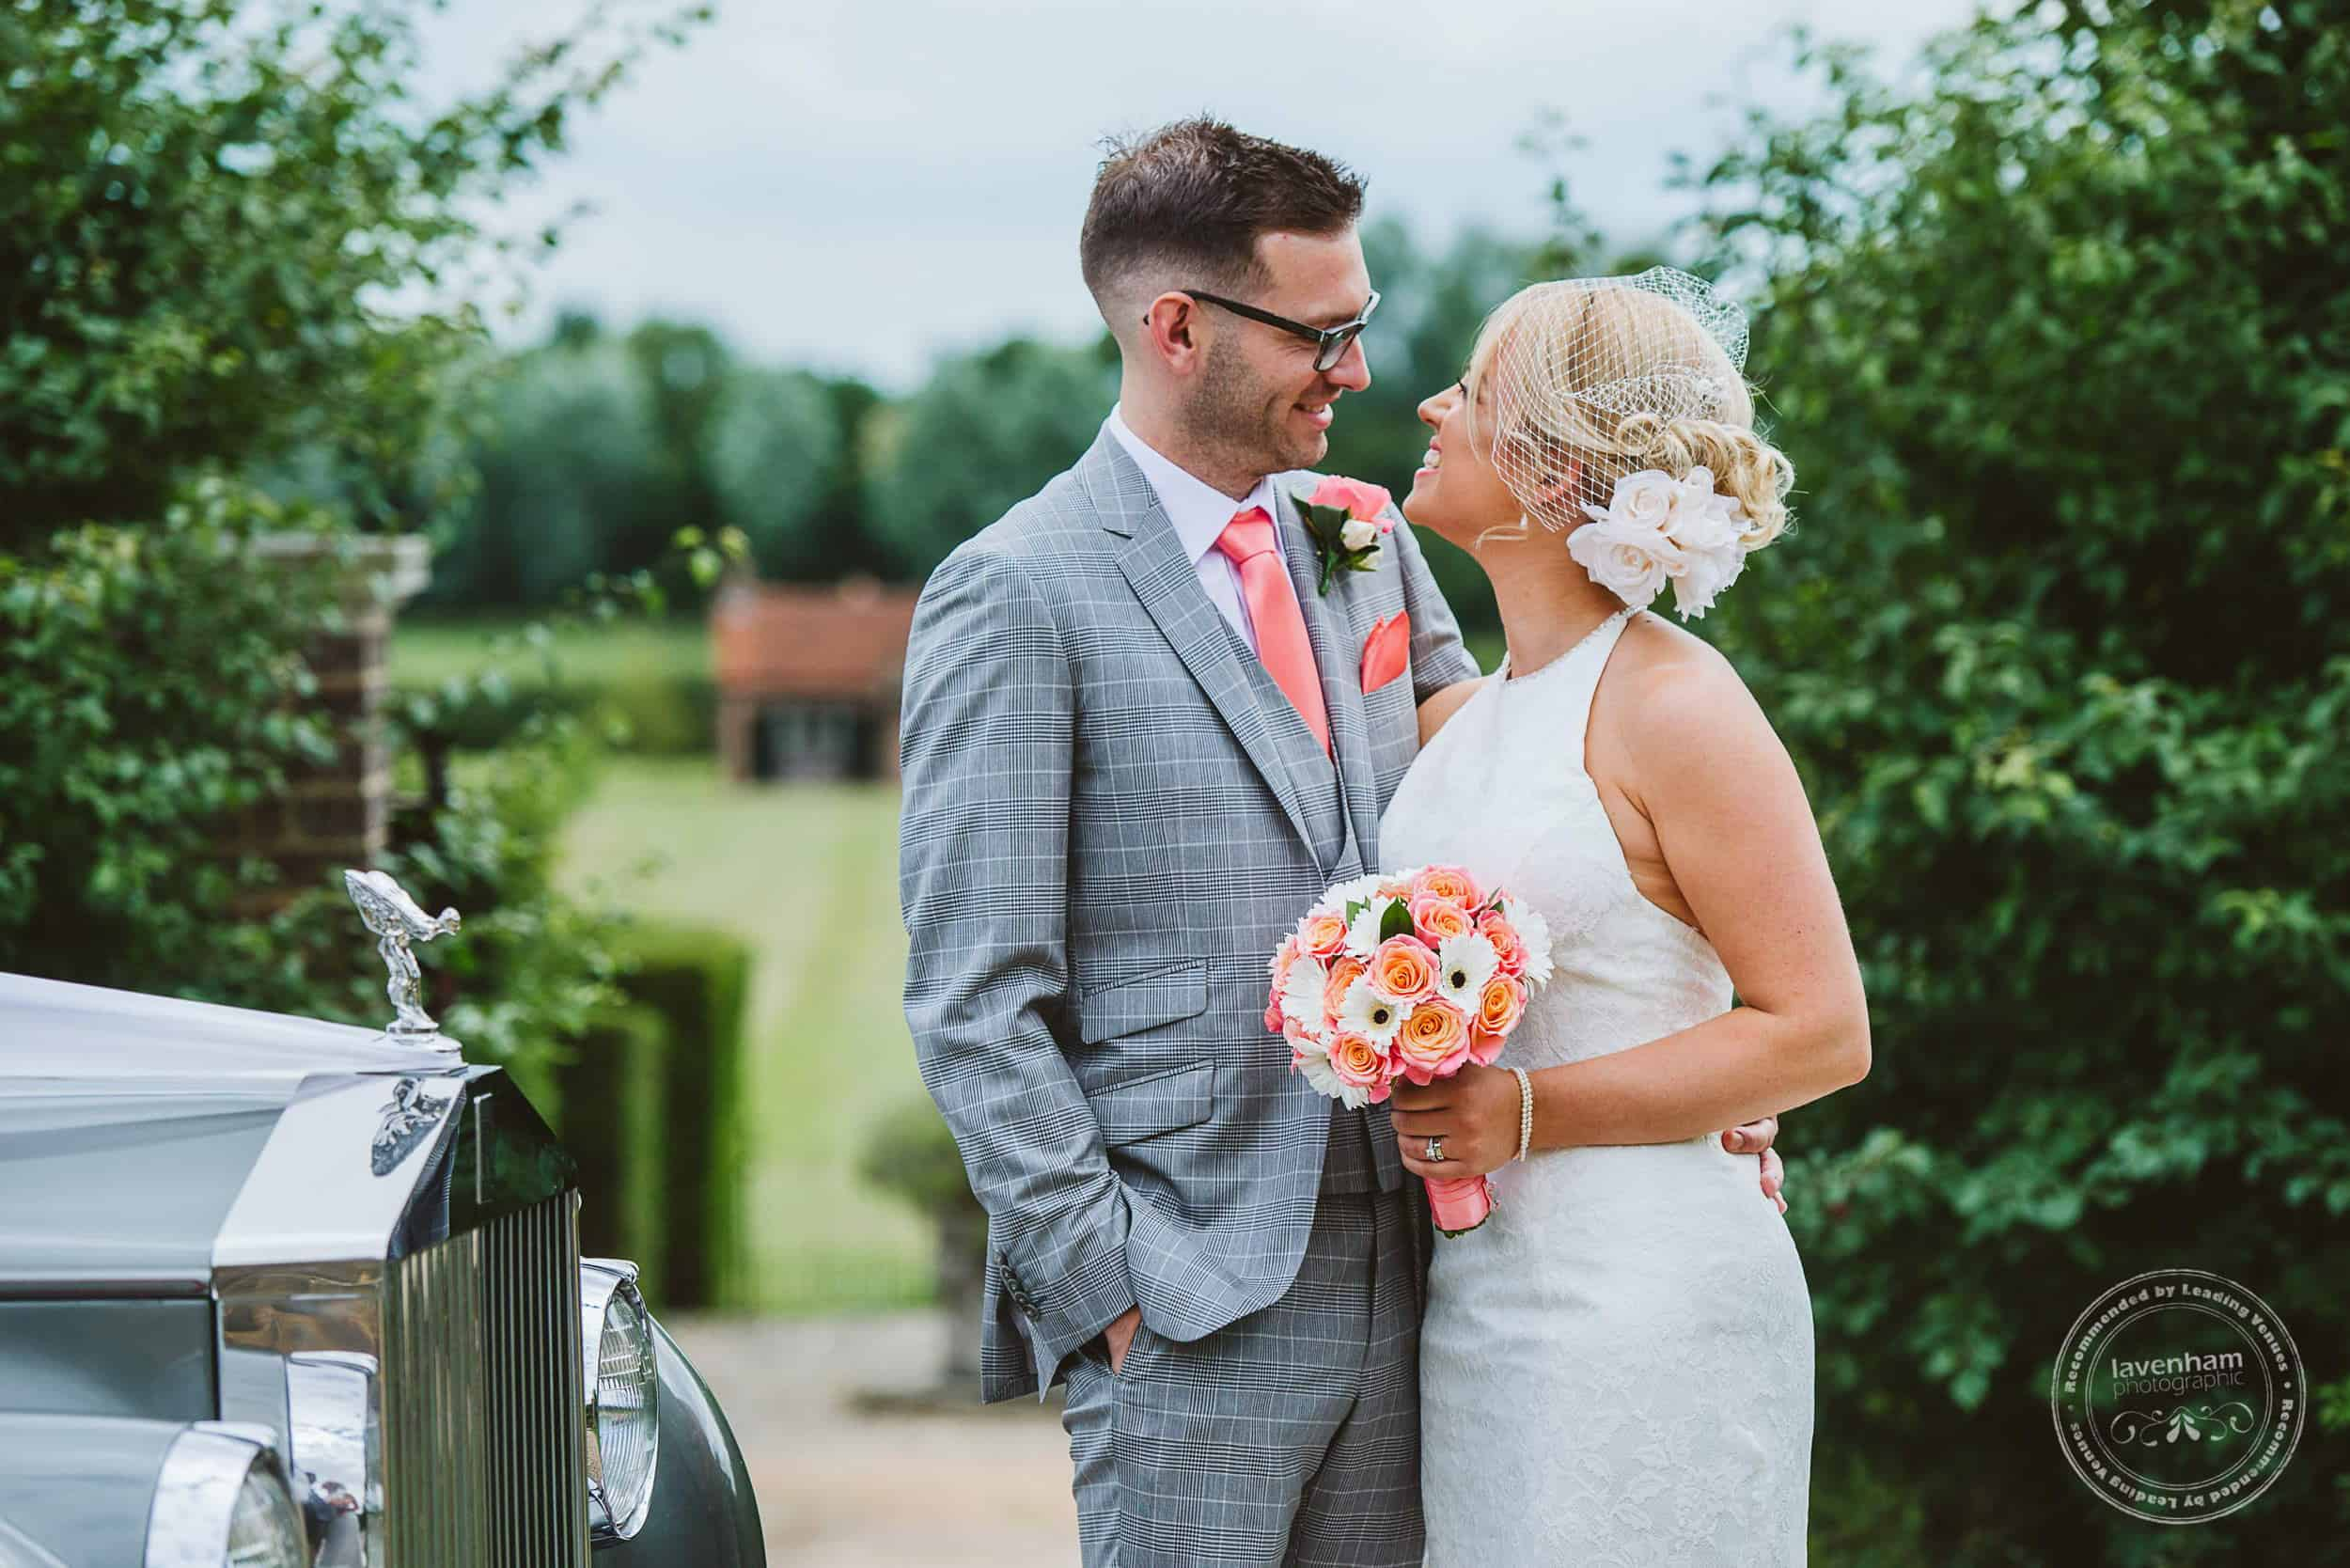 140717 Layer Marney Wedding Photography by Lavenham Photographic 058